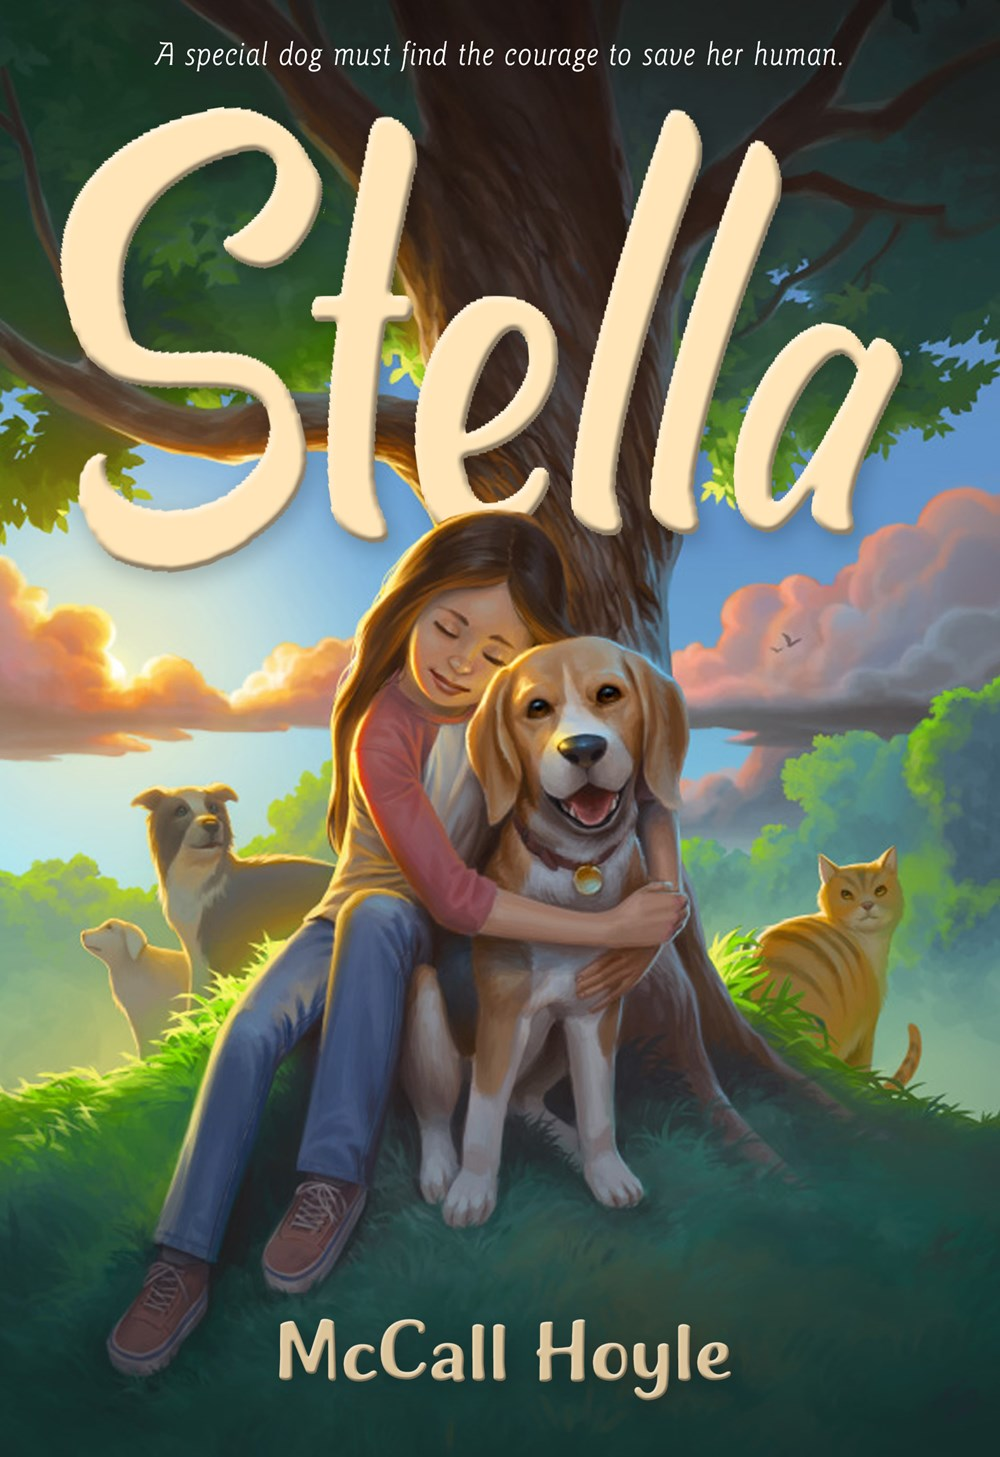 Stella by McCall Hoyle